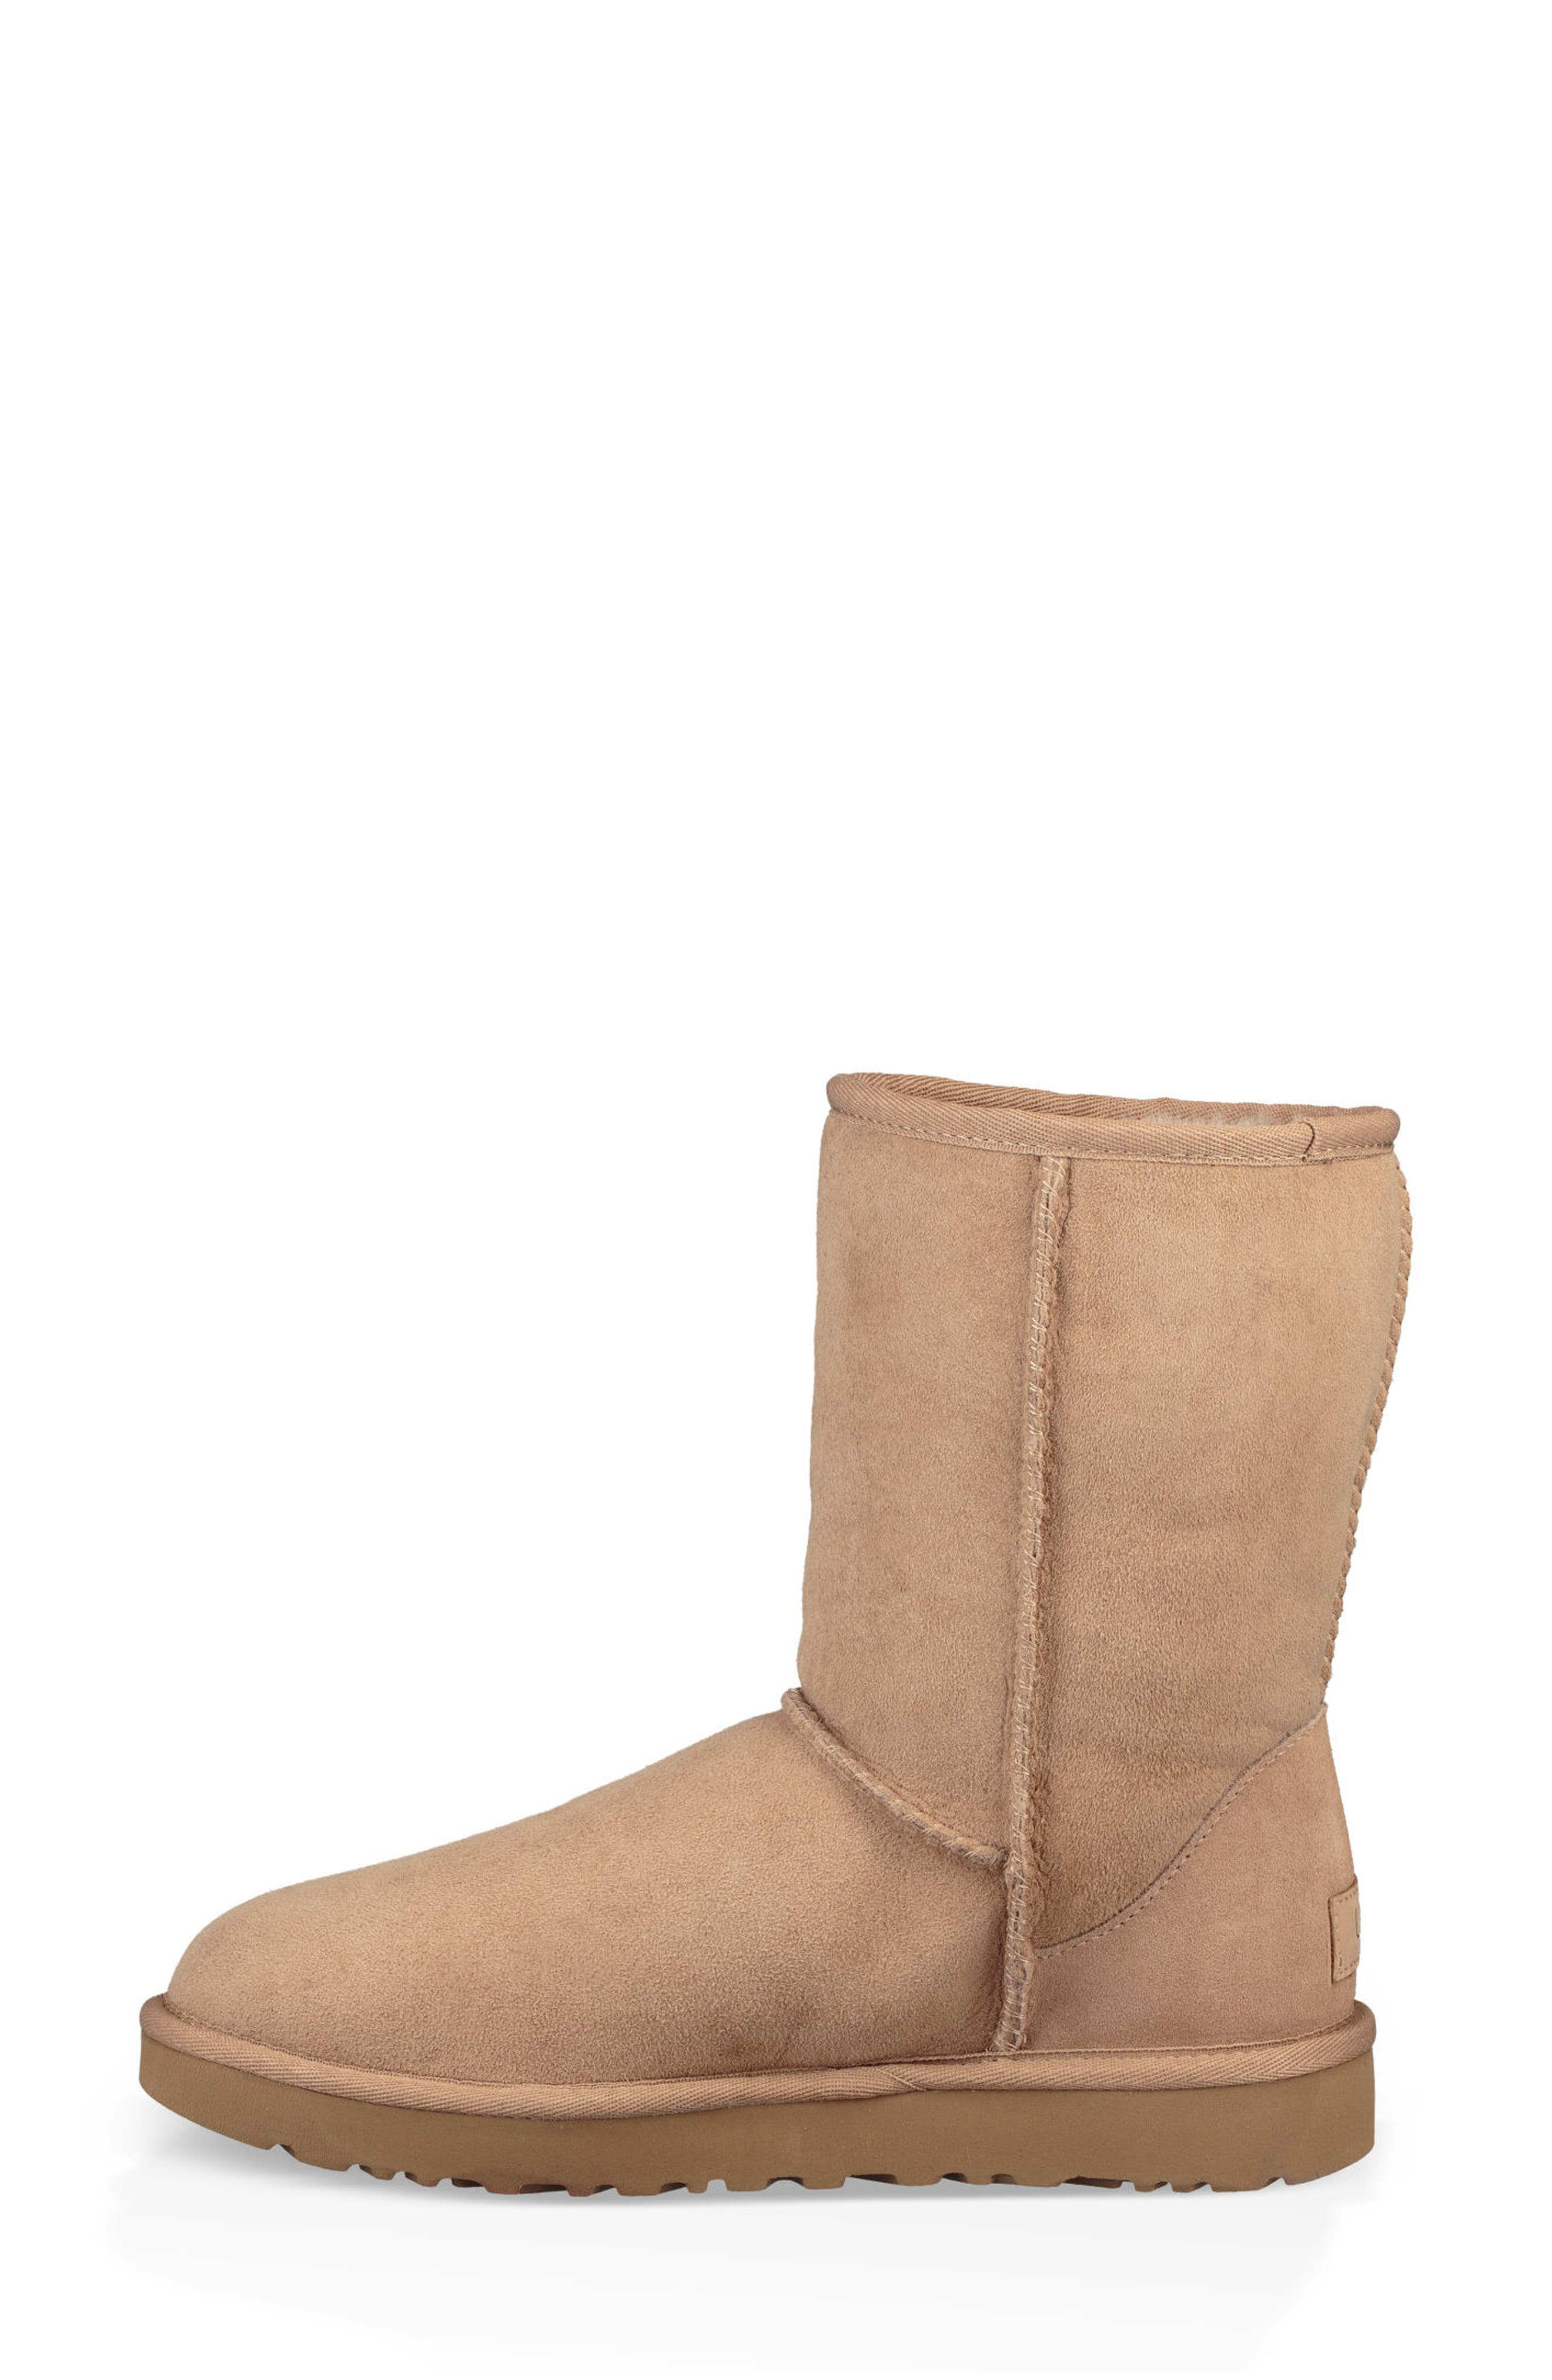 'Classic II' Genuine Shearling Lined Short Boot,                             Alternate thumbnail 7, color,                             Fawn Suede